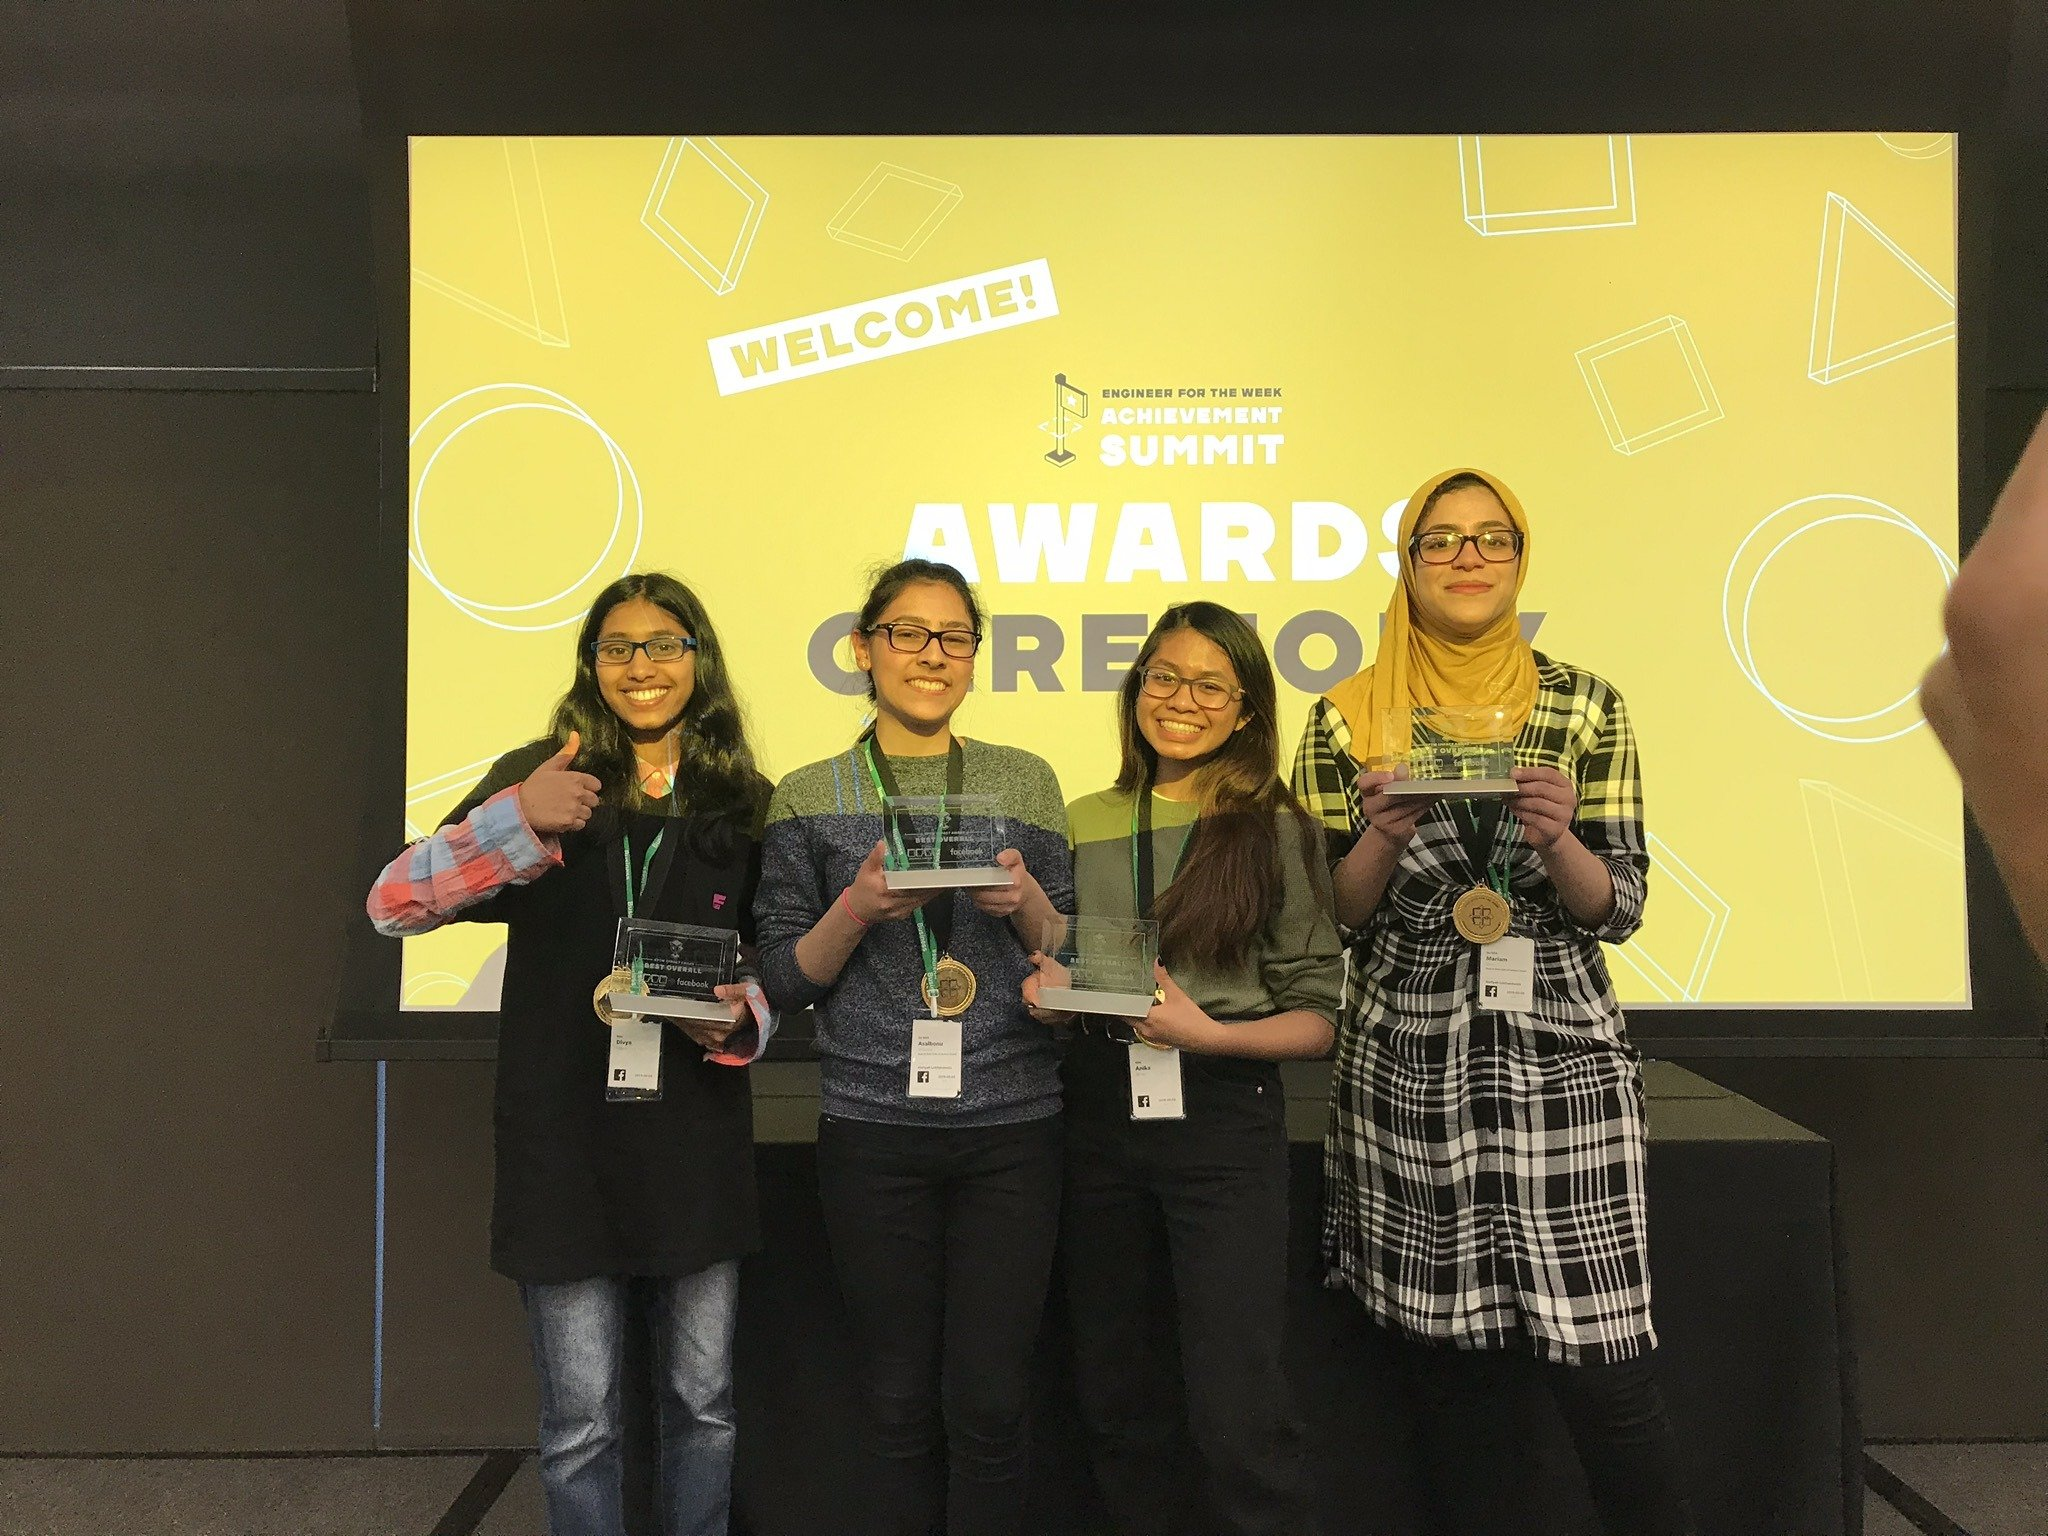 Members from The Best Buy Teen Tech Center @ Jersey City Boys & Girls Club accept the Best Overall Award at the Facebook Engineer for the Week Achievement Summit.